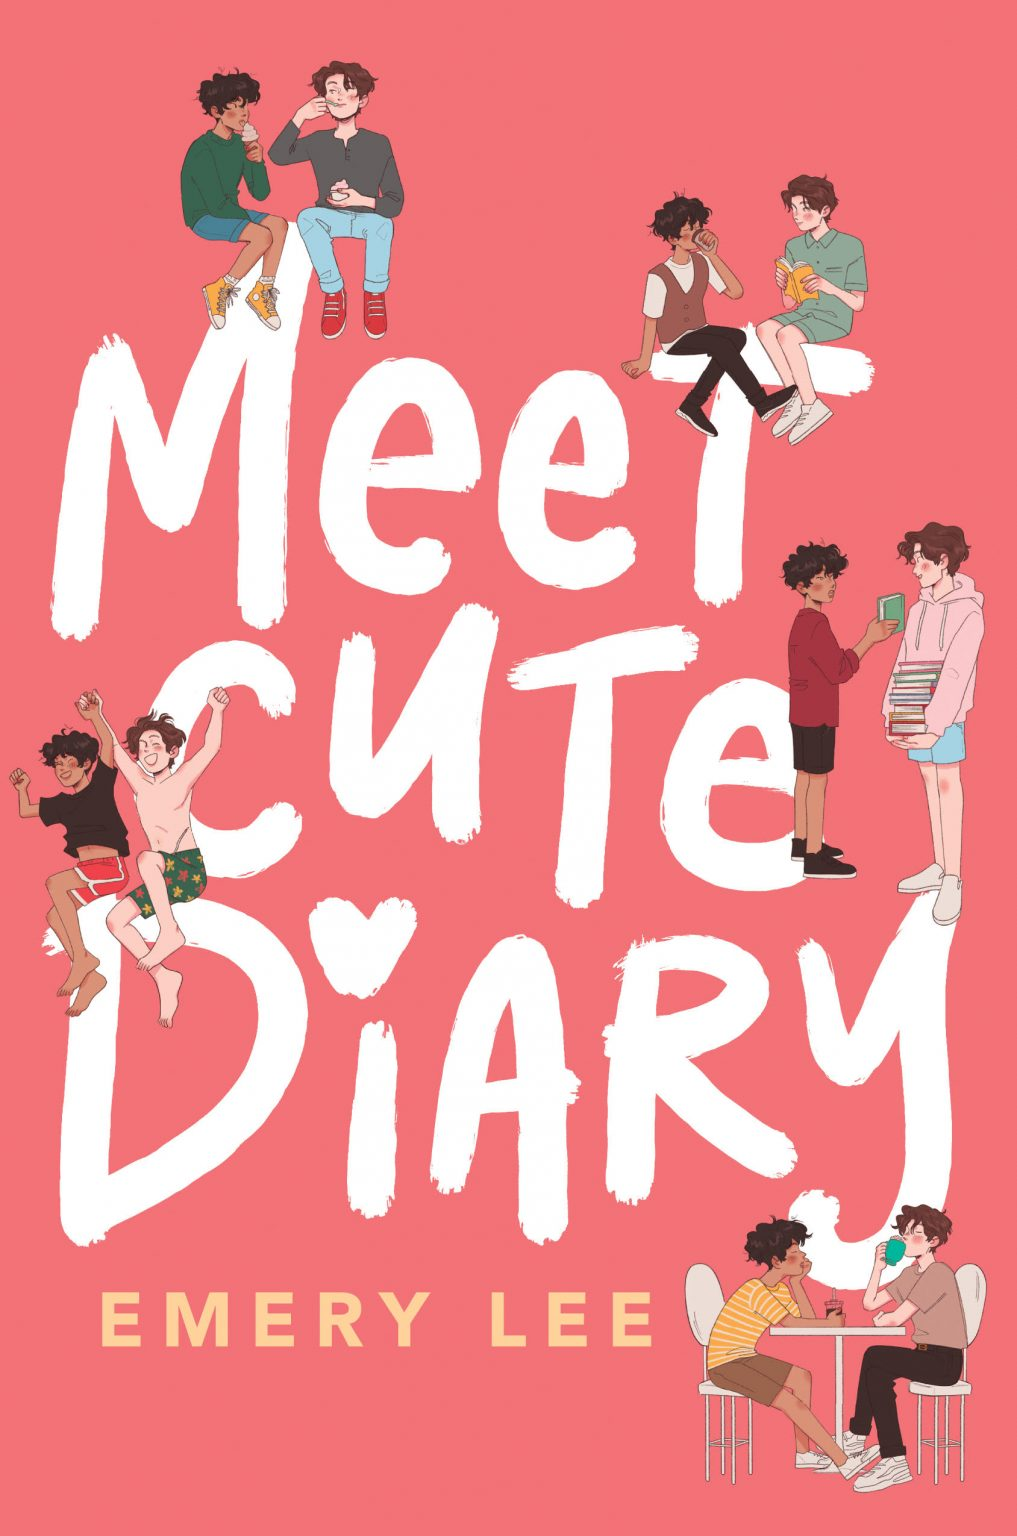 Book Review: Meet Cute Diary by Emery Lee